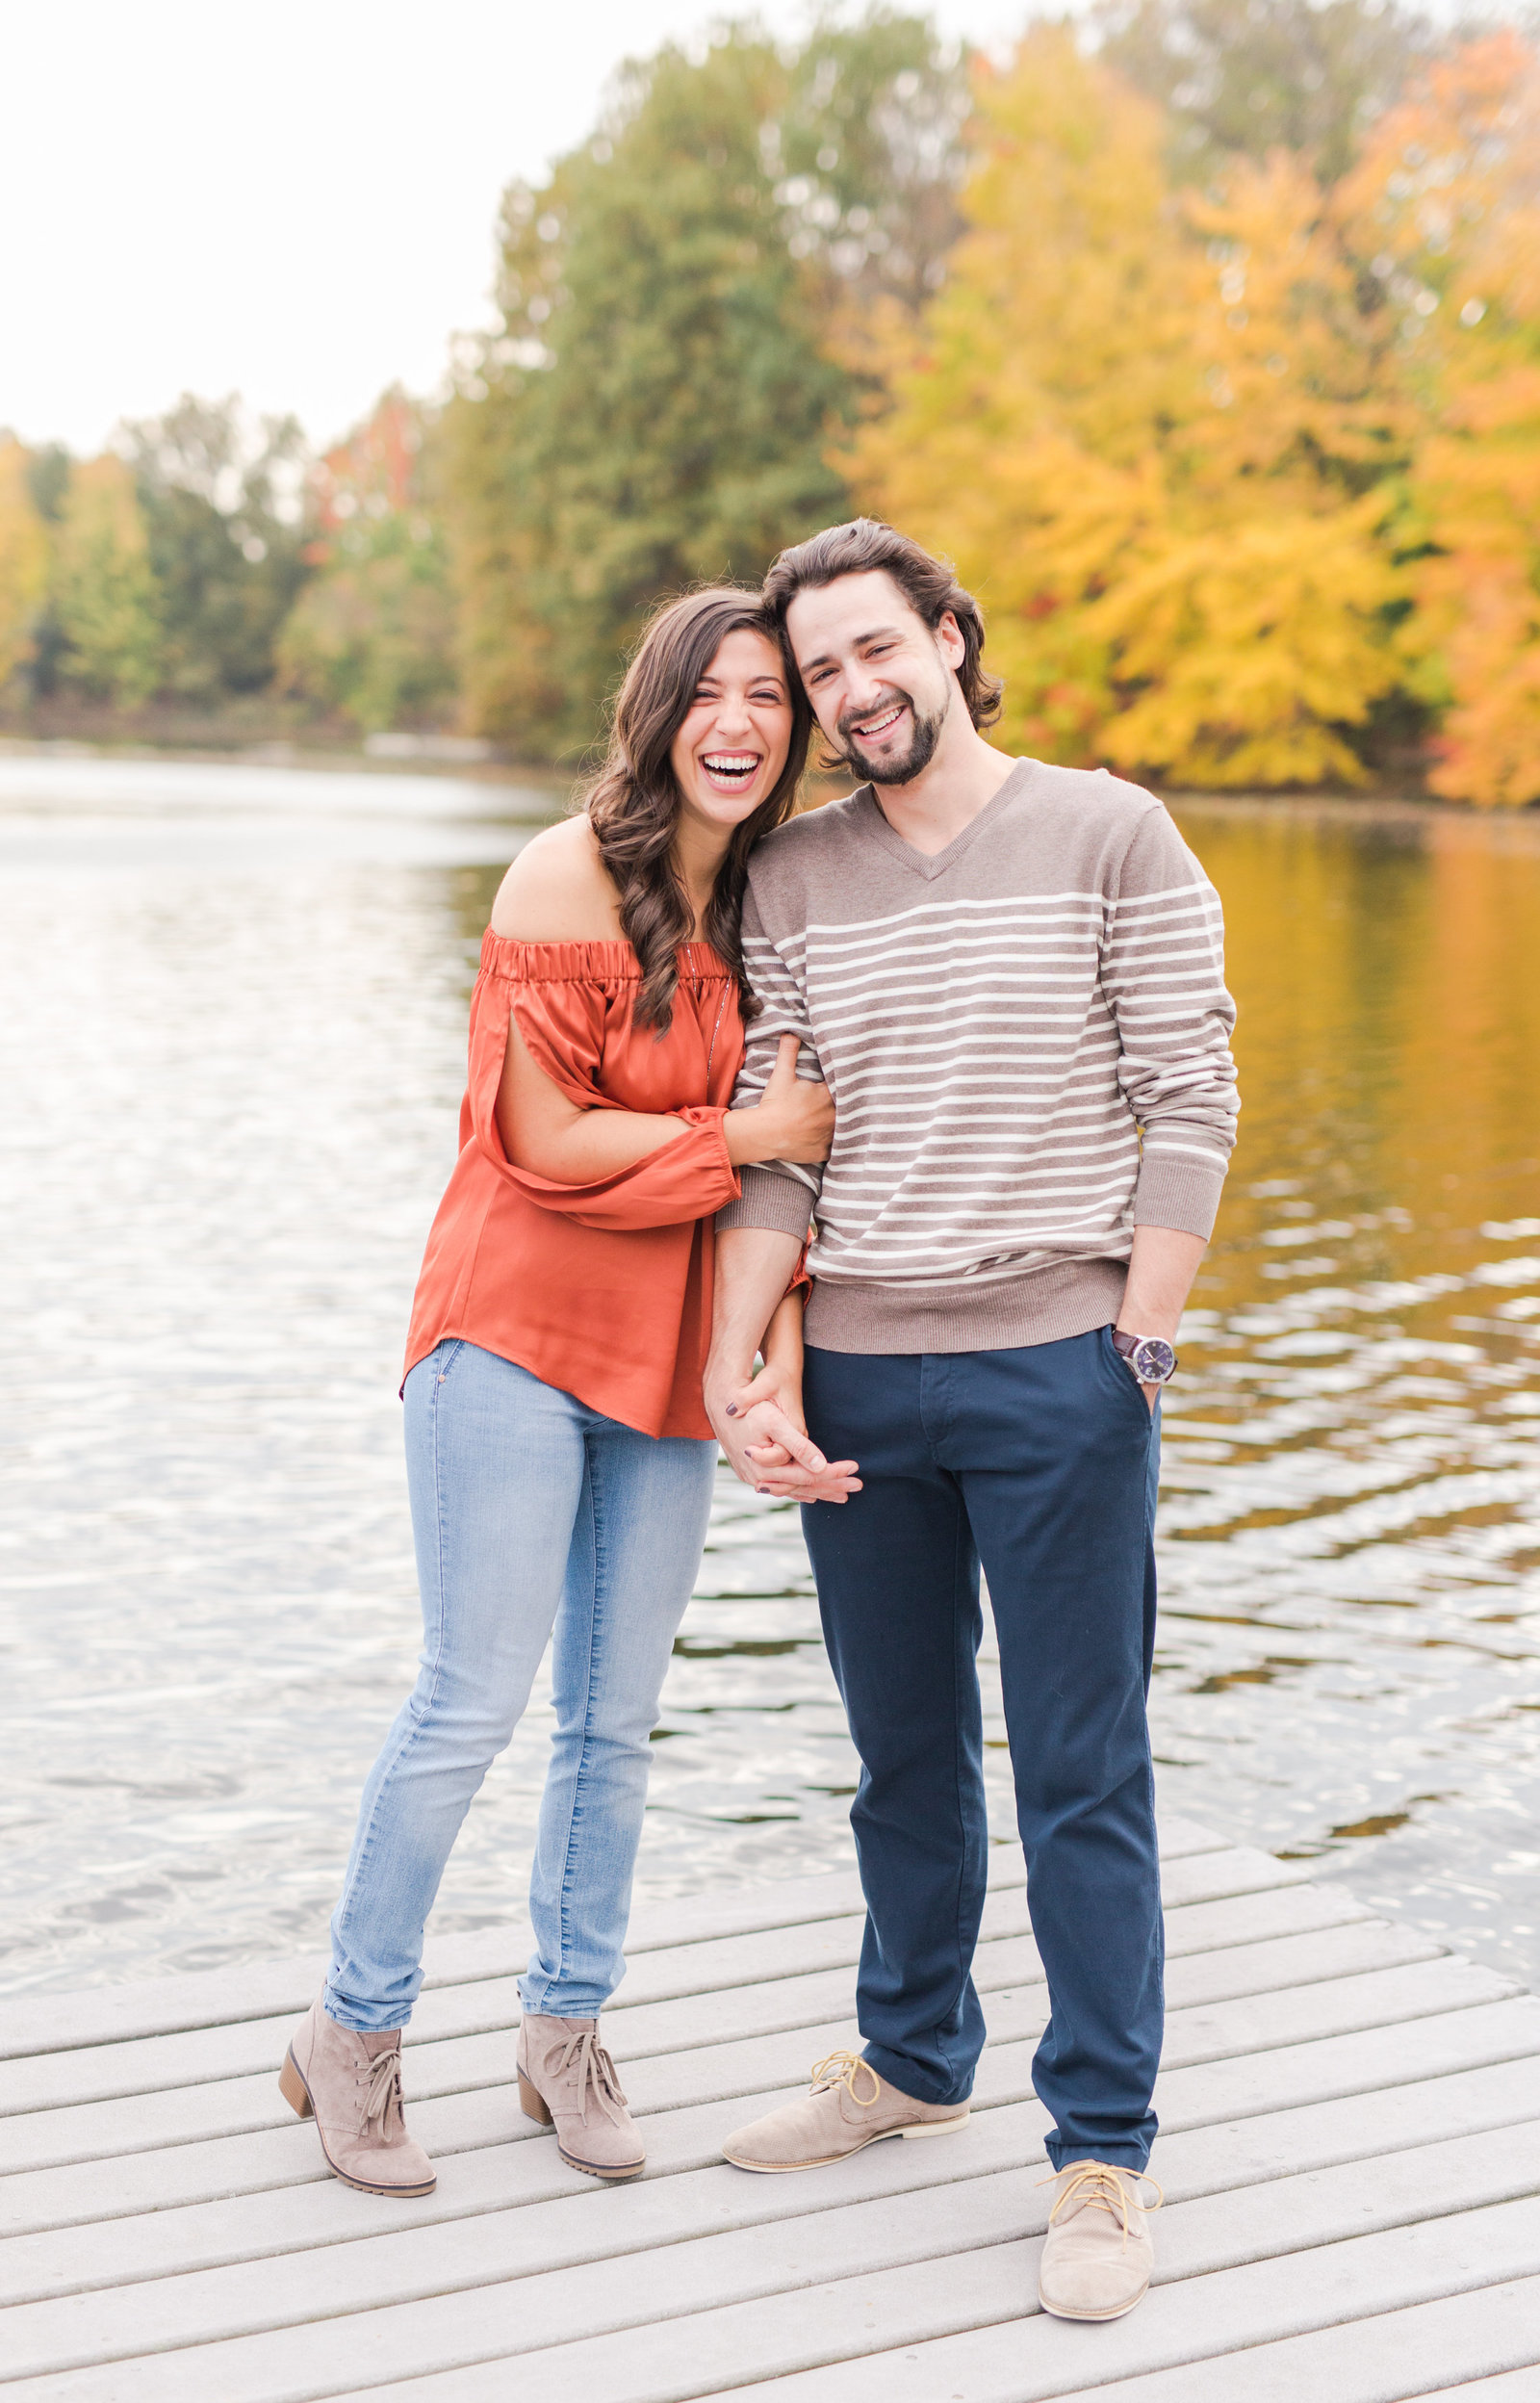 kent-ohio-engagement-session-allison-ewing-photography-028-1